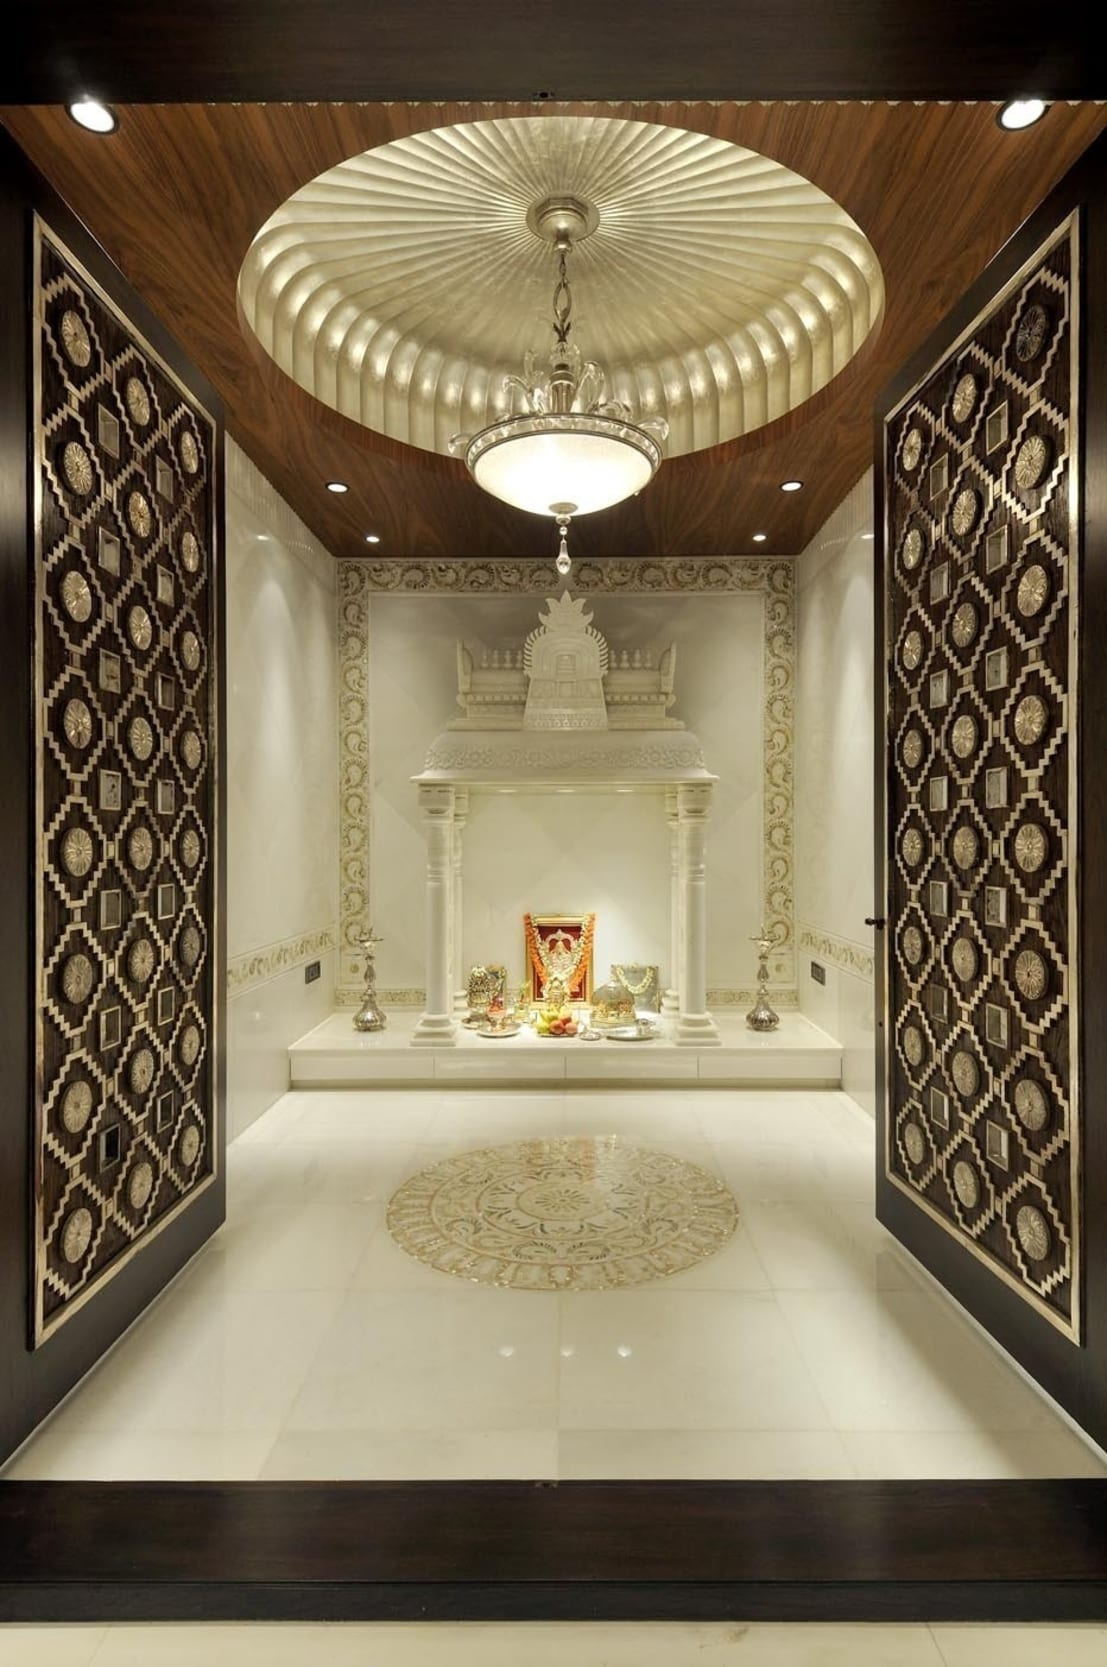 Puja Room Design: 10 Pooja Room Door Designs For Your Home